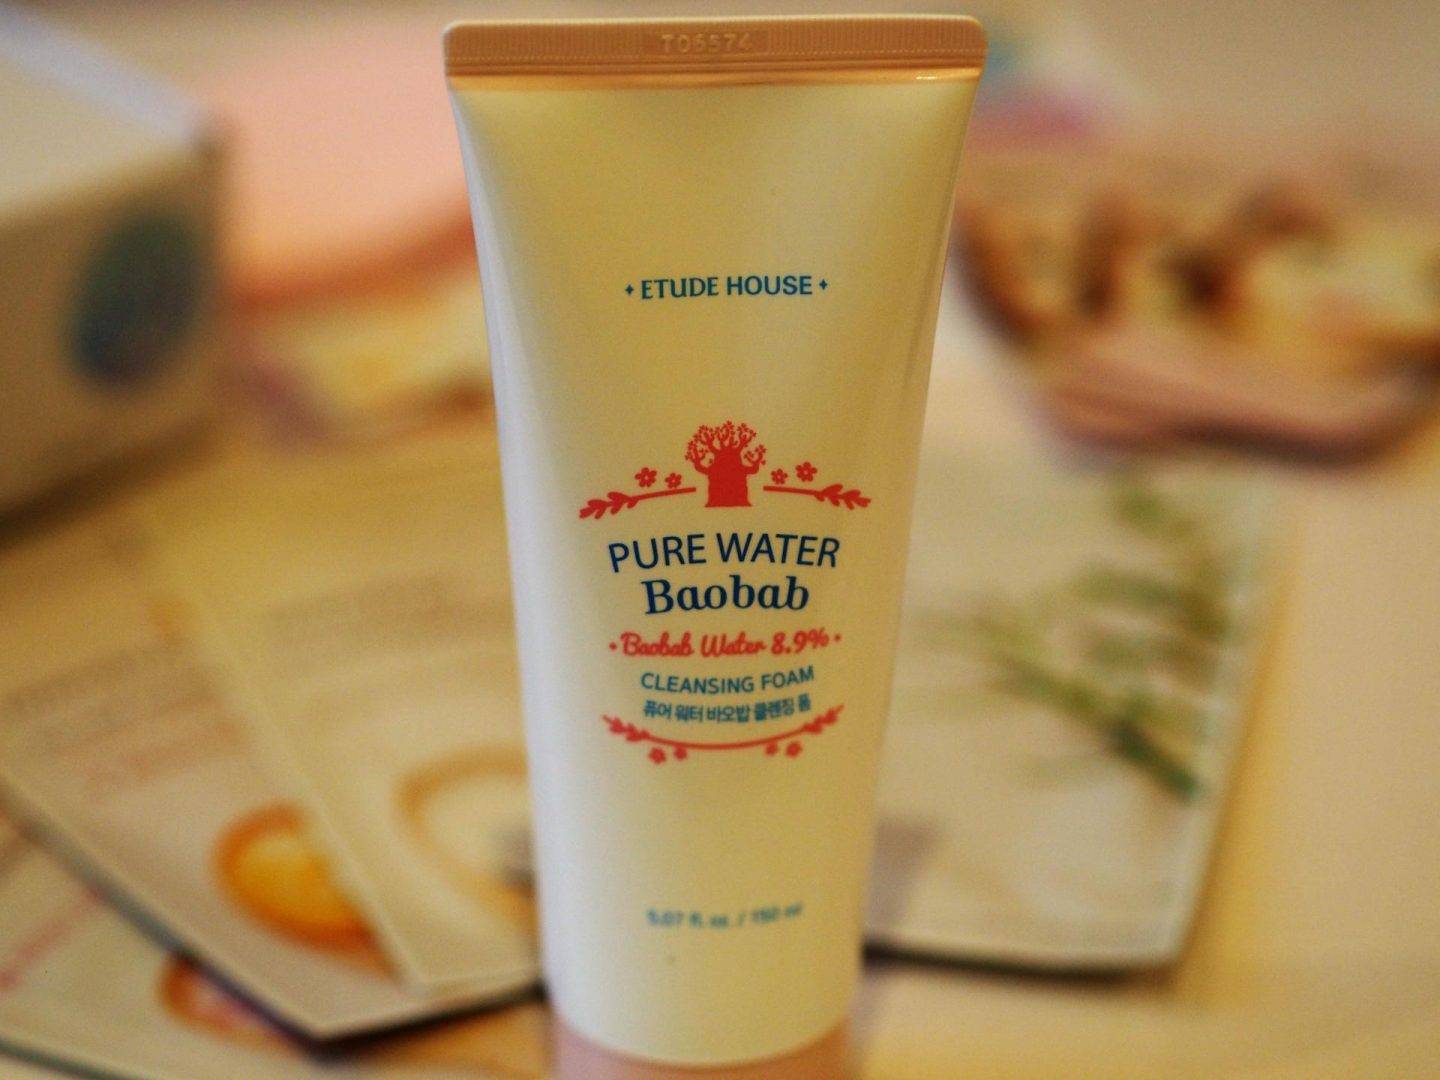 Etude House Pure Water Baobab Cleansing Foam